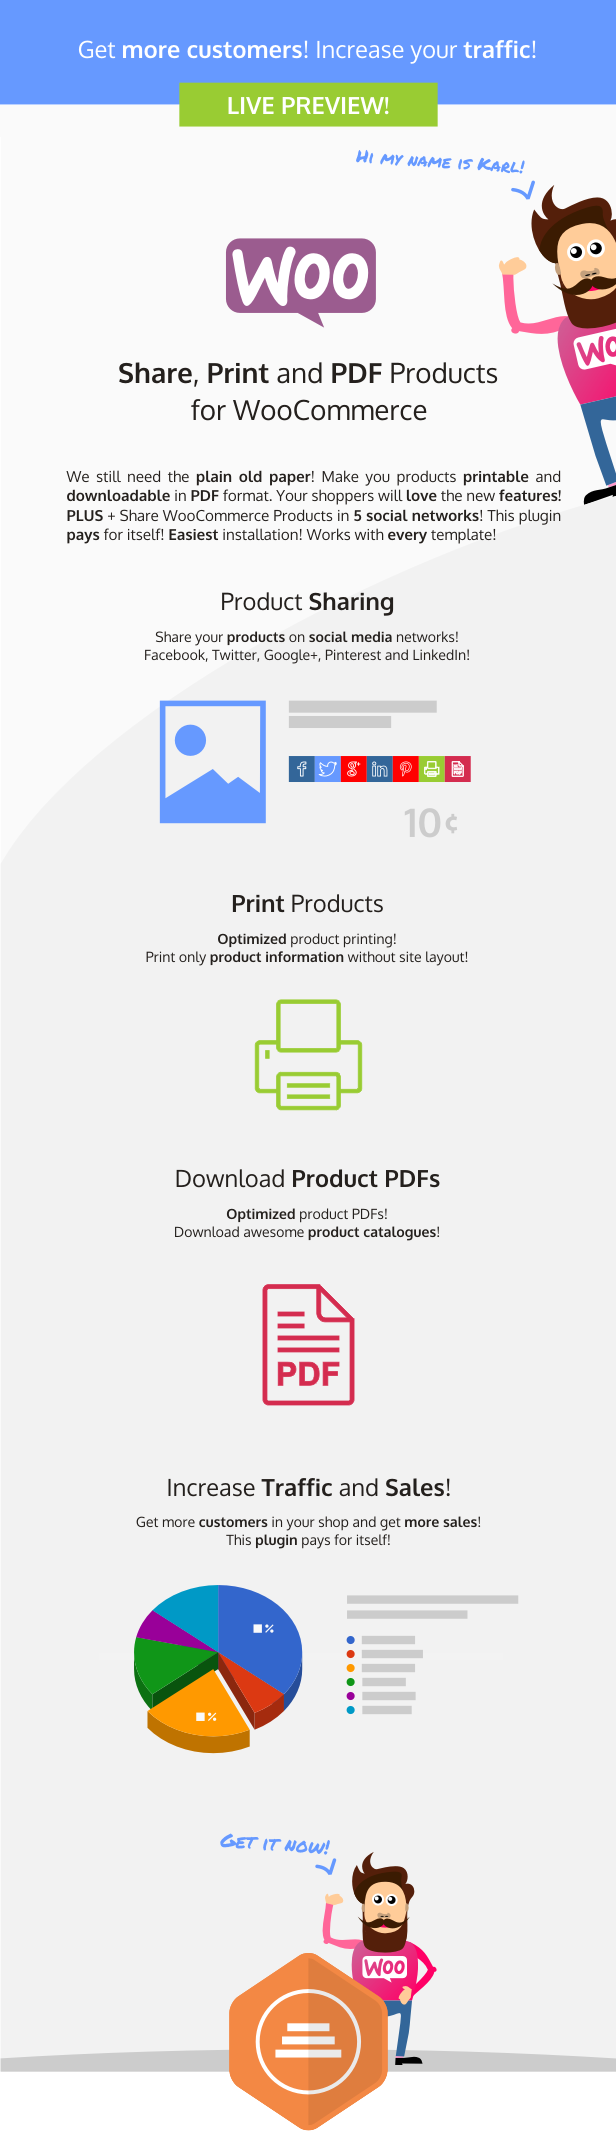 Share, Print and PDF Products for WooCommerce - 3